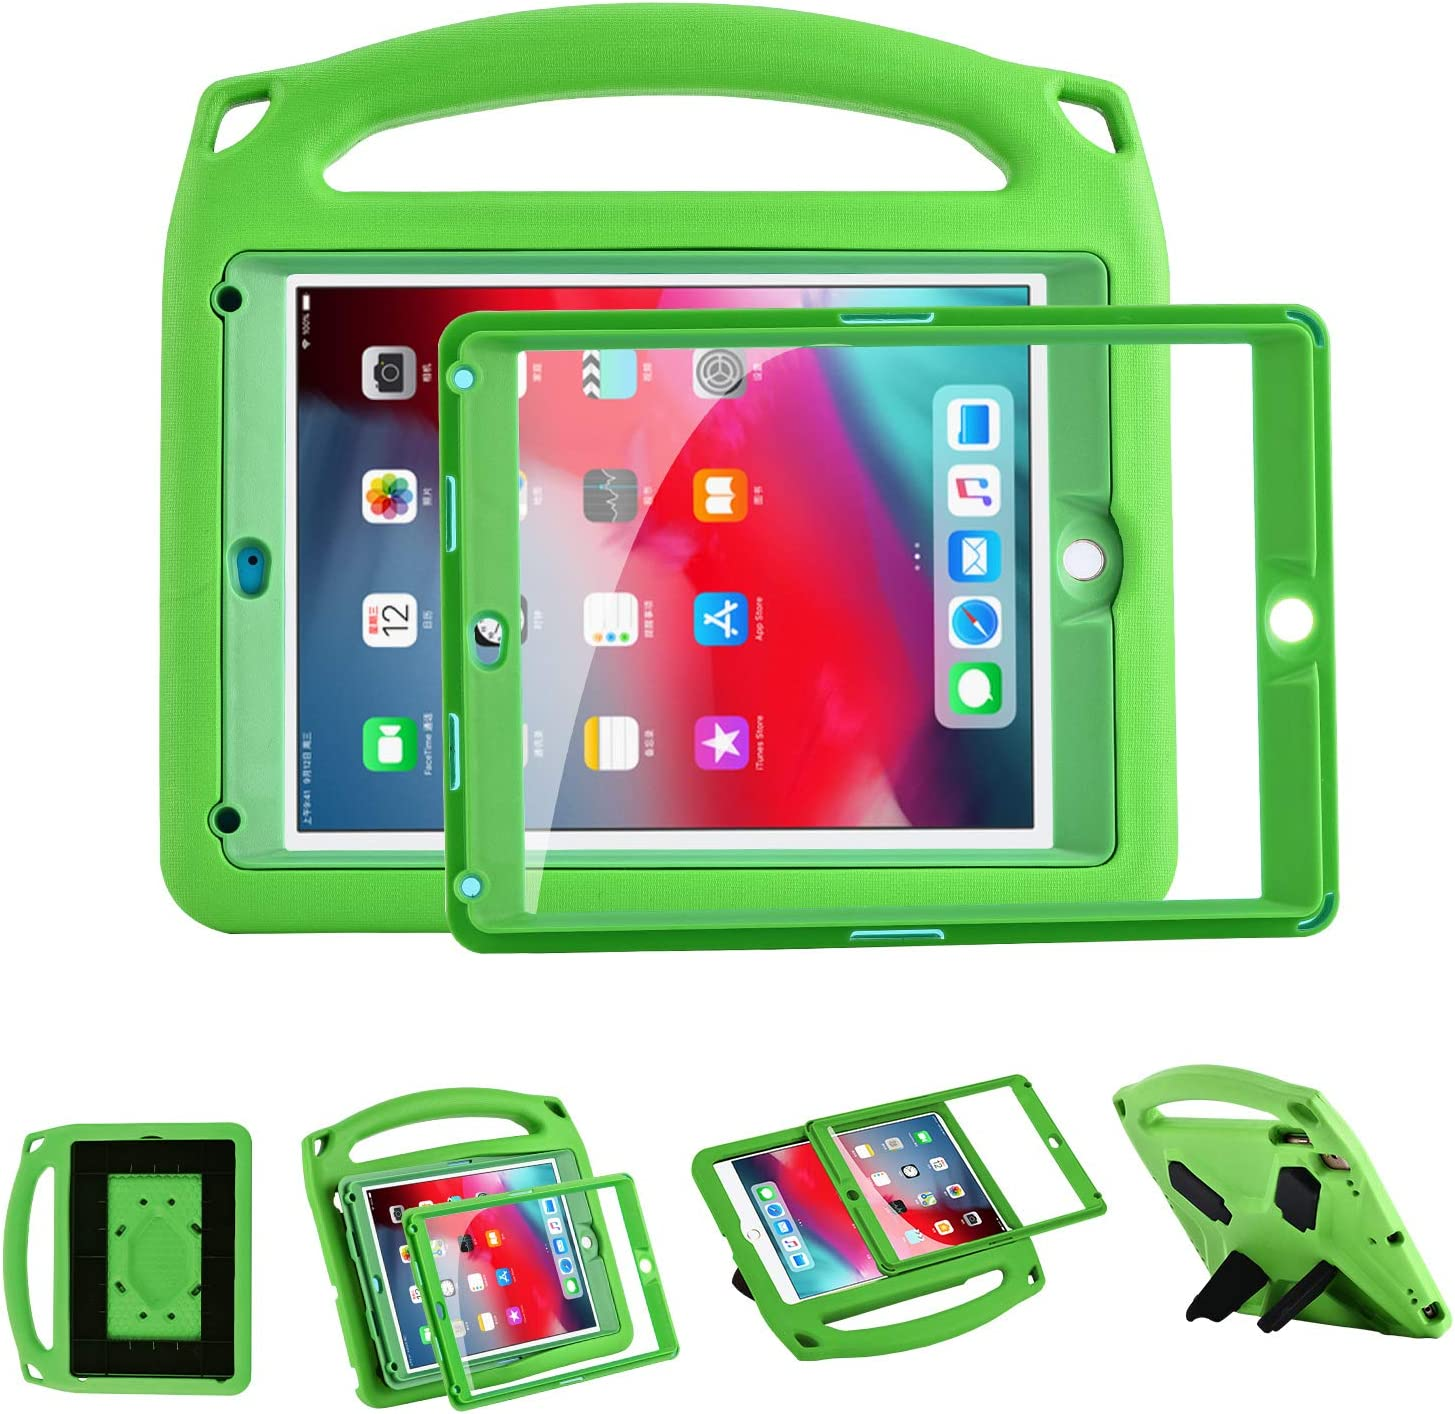 i-original Compatible with New iPad 9.7 Inch 2018/2017 EVA Shockproof Case for Kids Handle Cover, Multi-Angle Kickstand Light Weight EVA Protective Stand Bumper Cover with Screen Protector(Green)